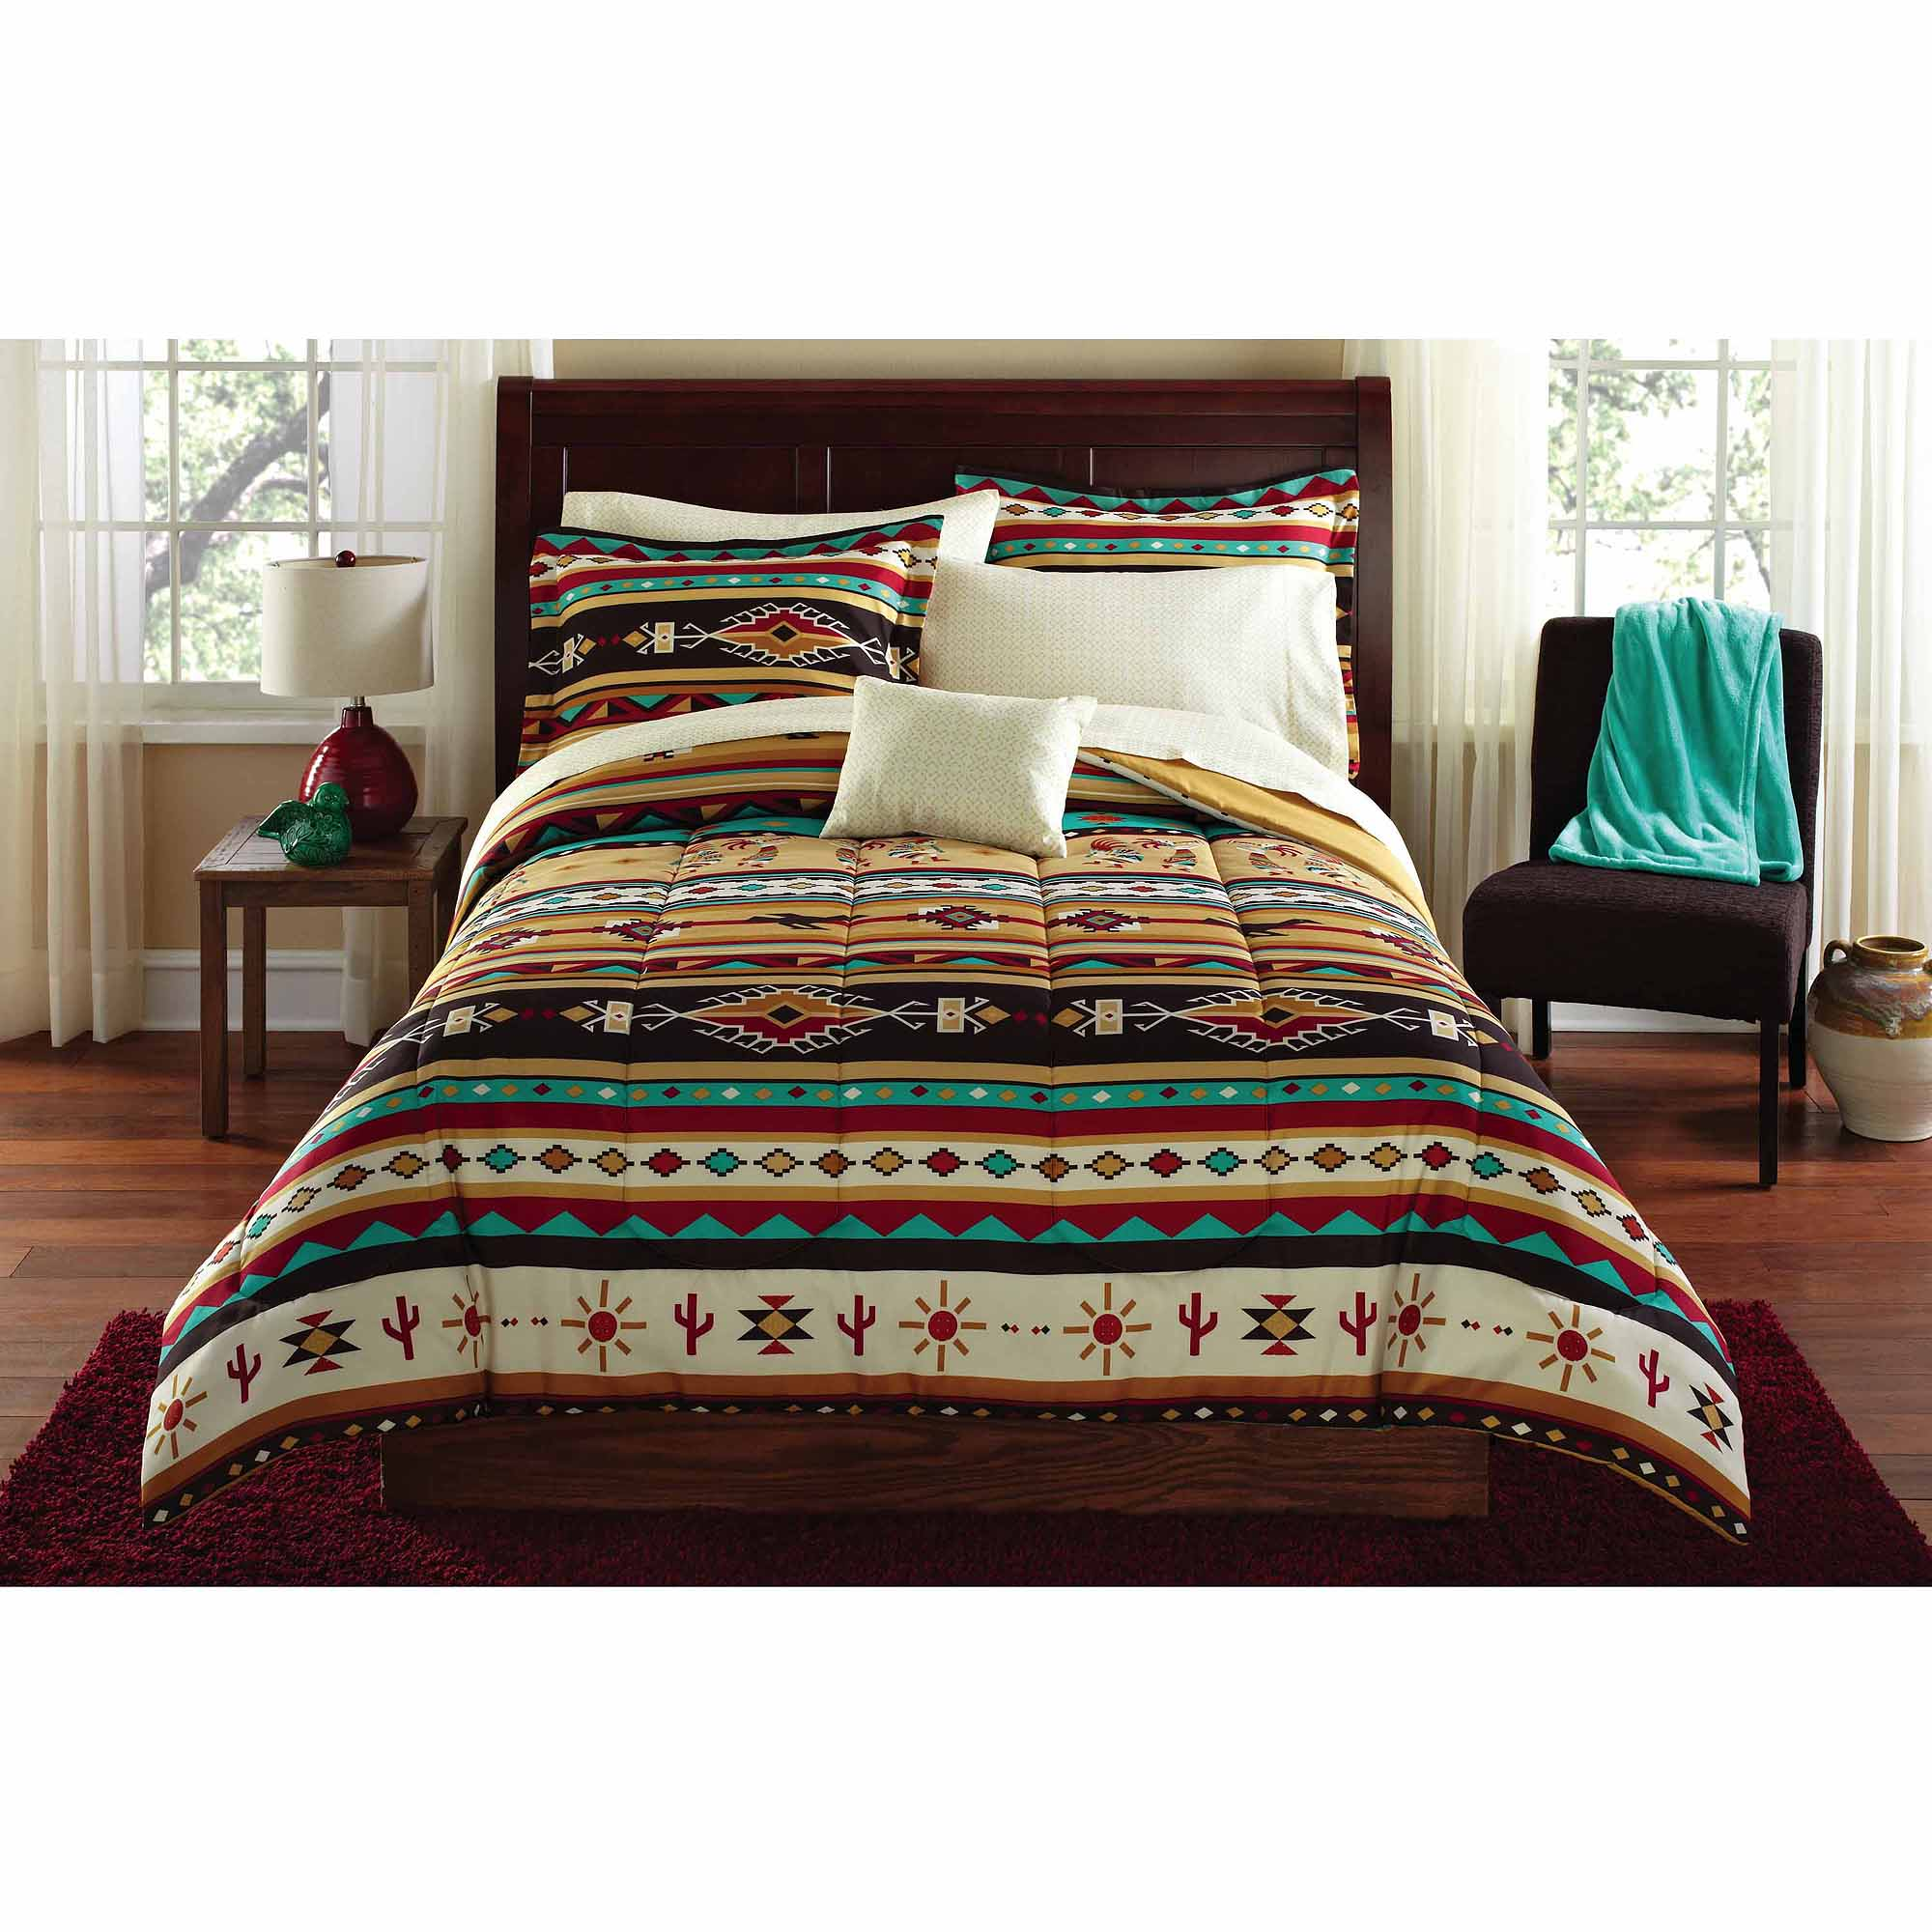 Mainstays Kokopelli Bed in a Bag Coordinating Bedding Set